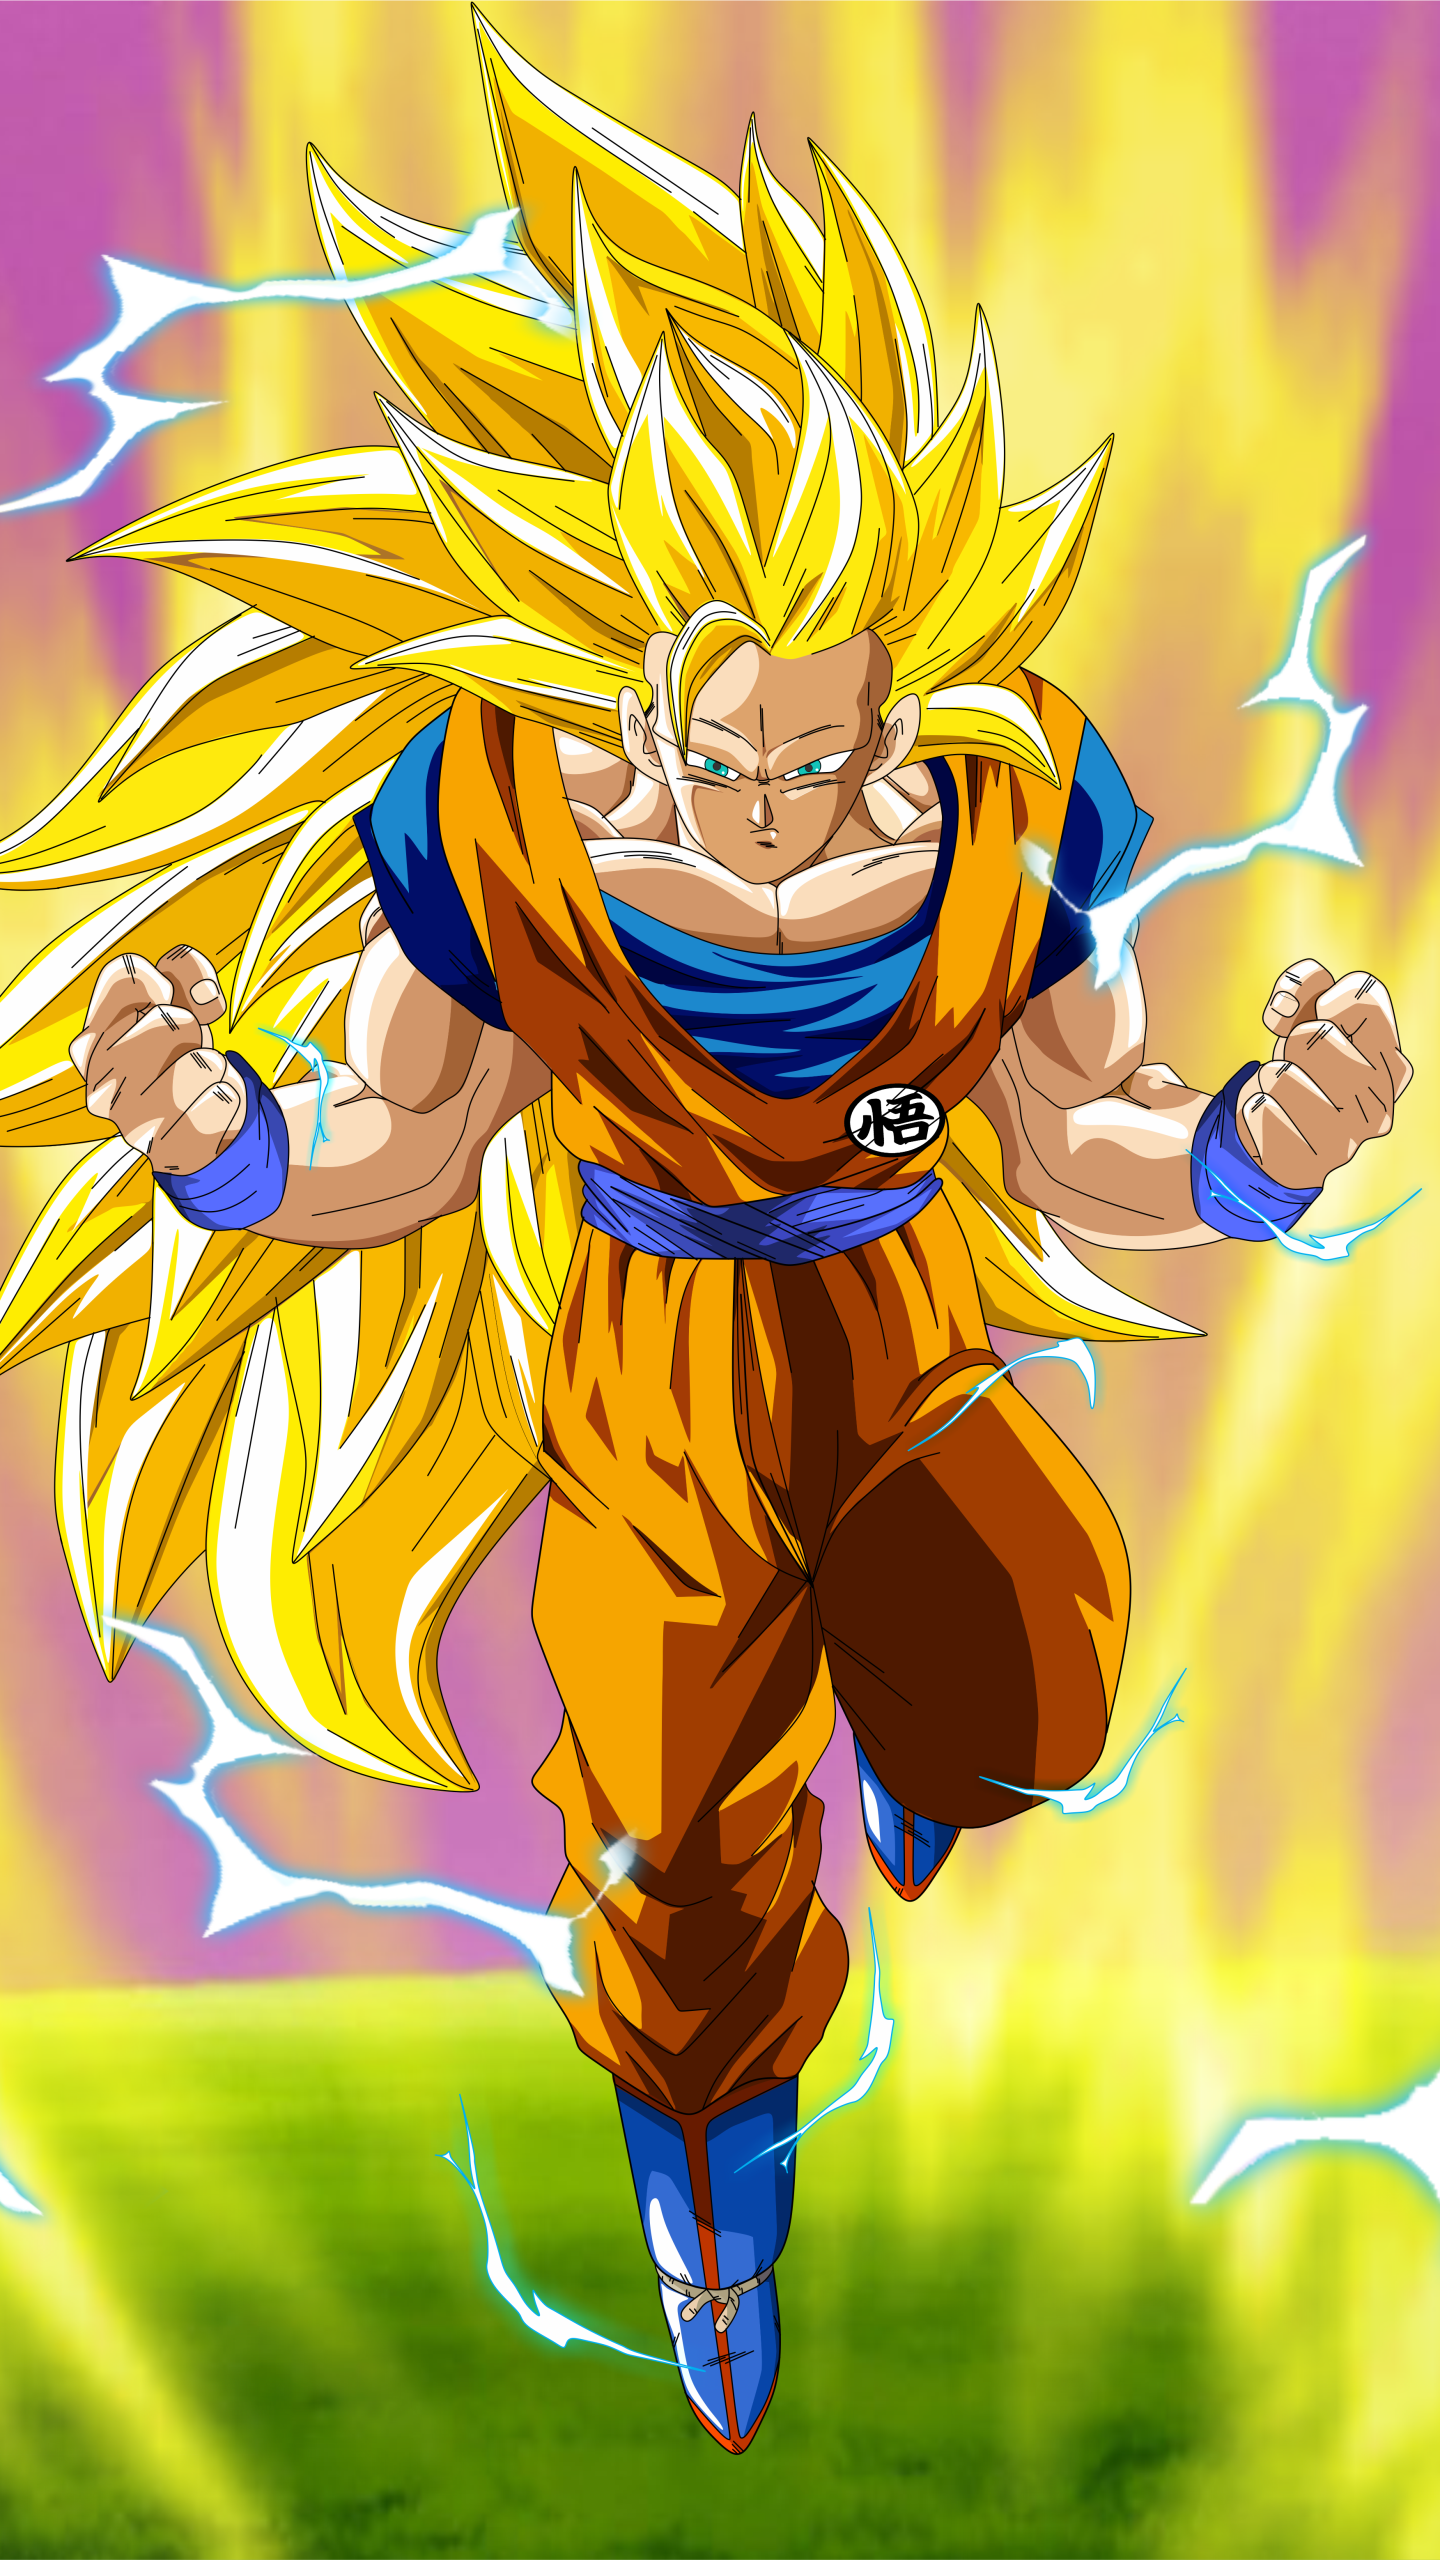 Fondos de dragon ball super para iphone y android dragon for Wallpapers para android